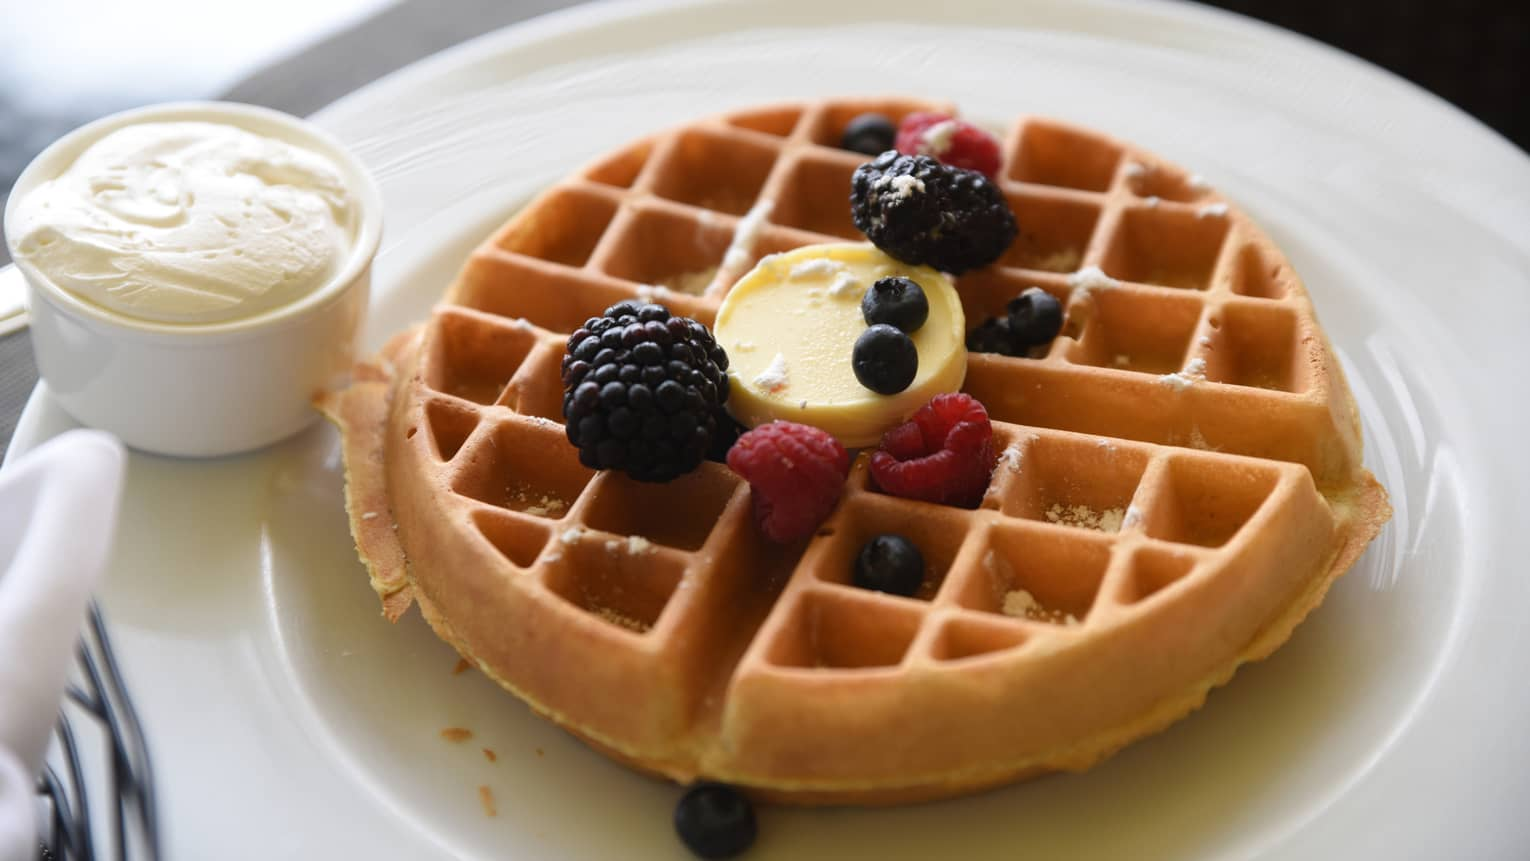 Waffle with butter and sprinkle of fresh berries, cup of whipped cream on plate